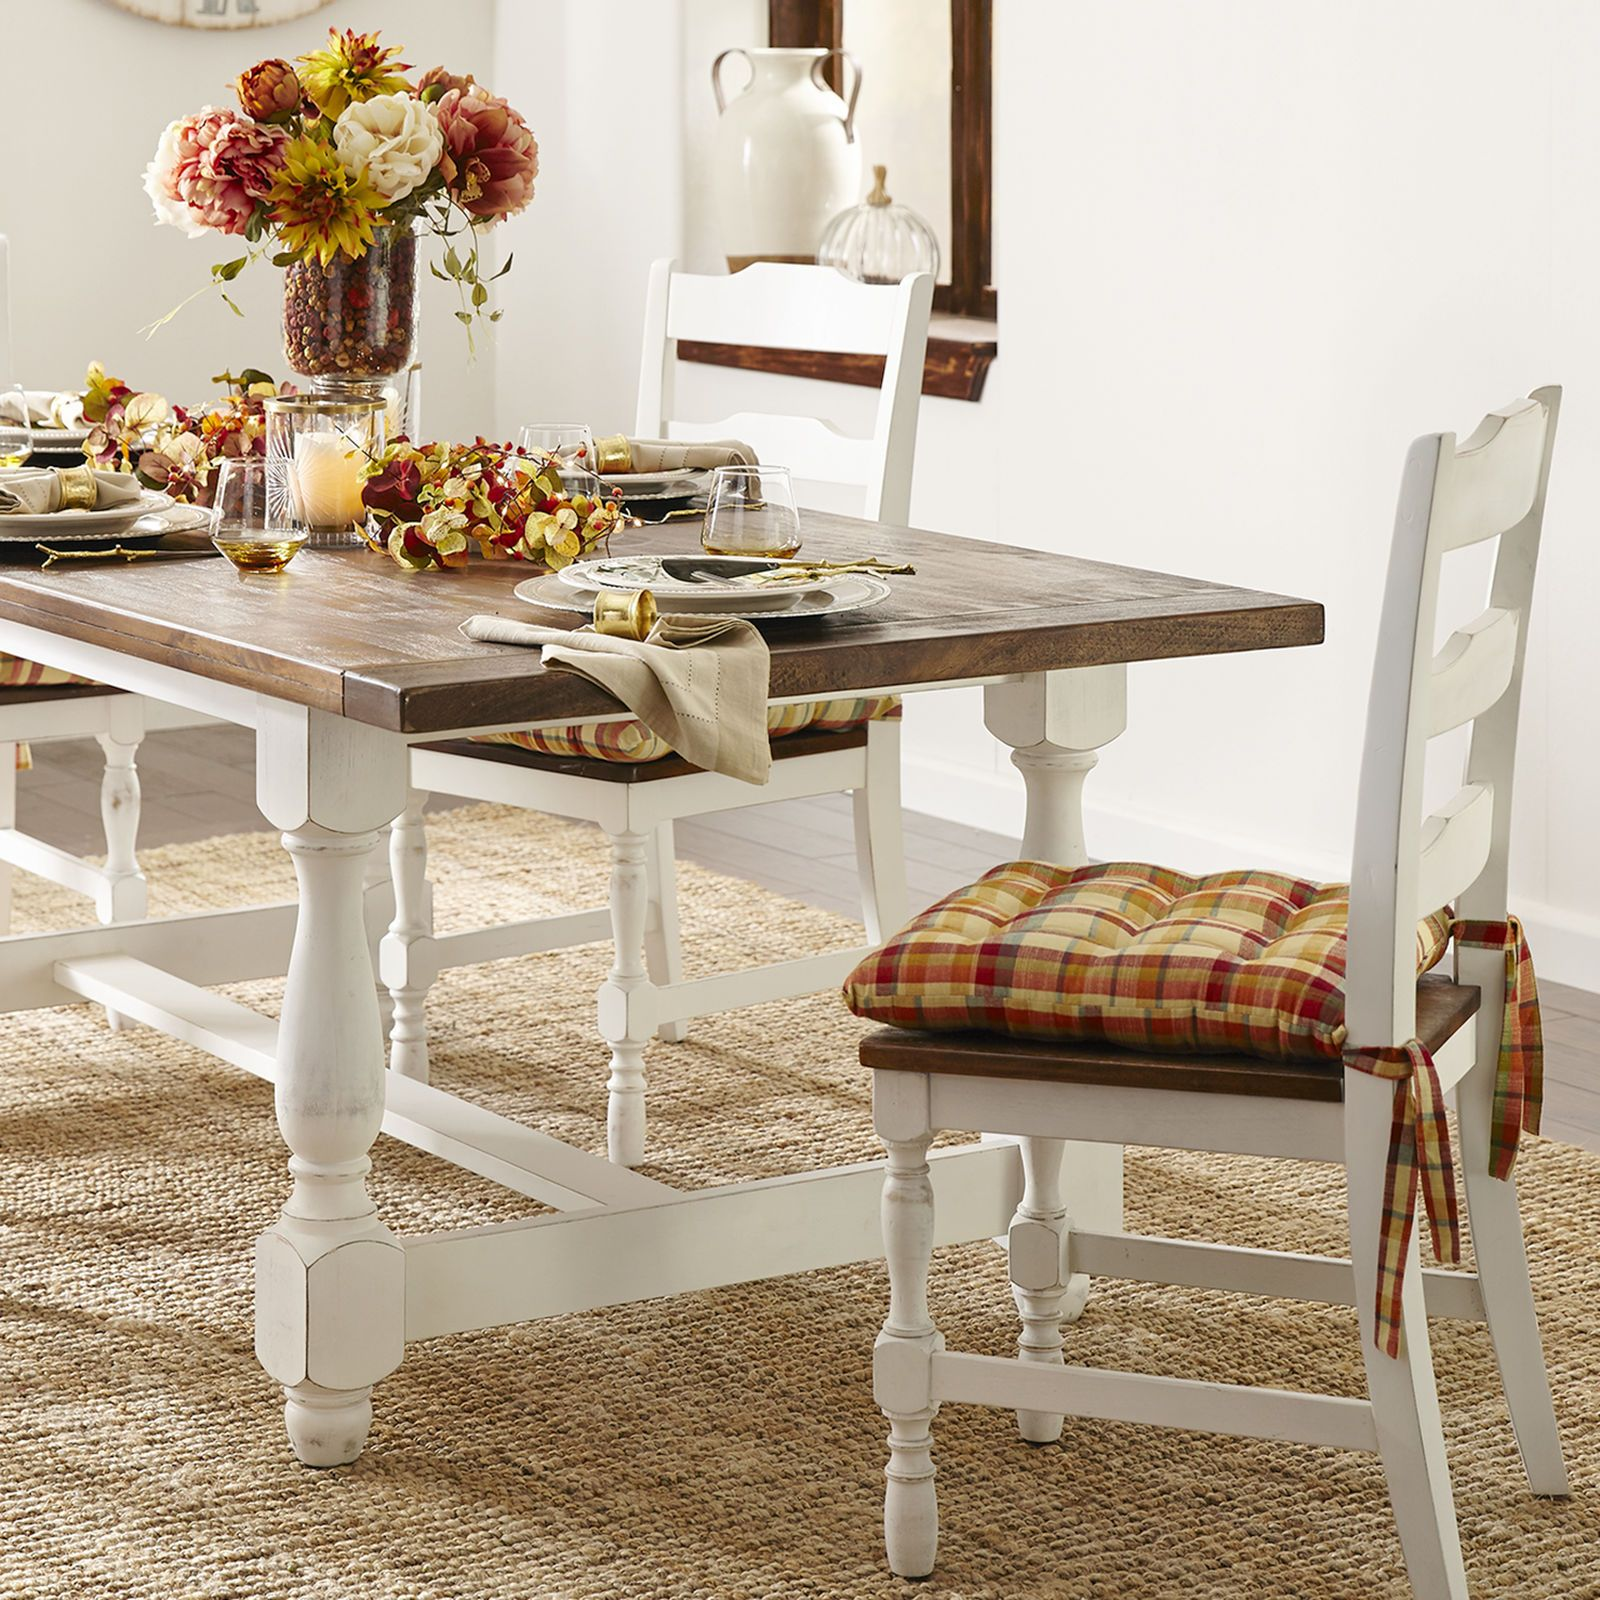 Heartland White Dining Tables In 2020 White Dining Table Dining